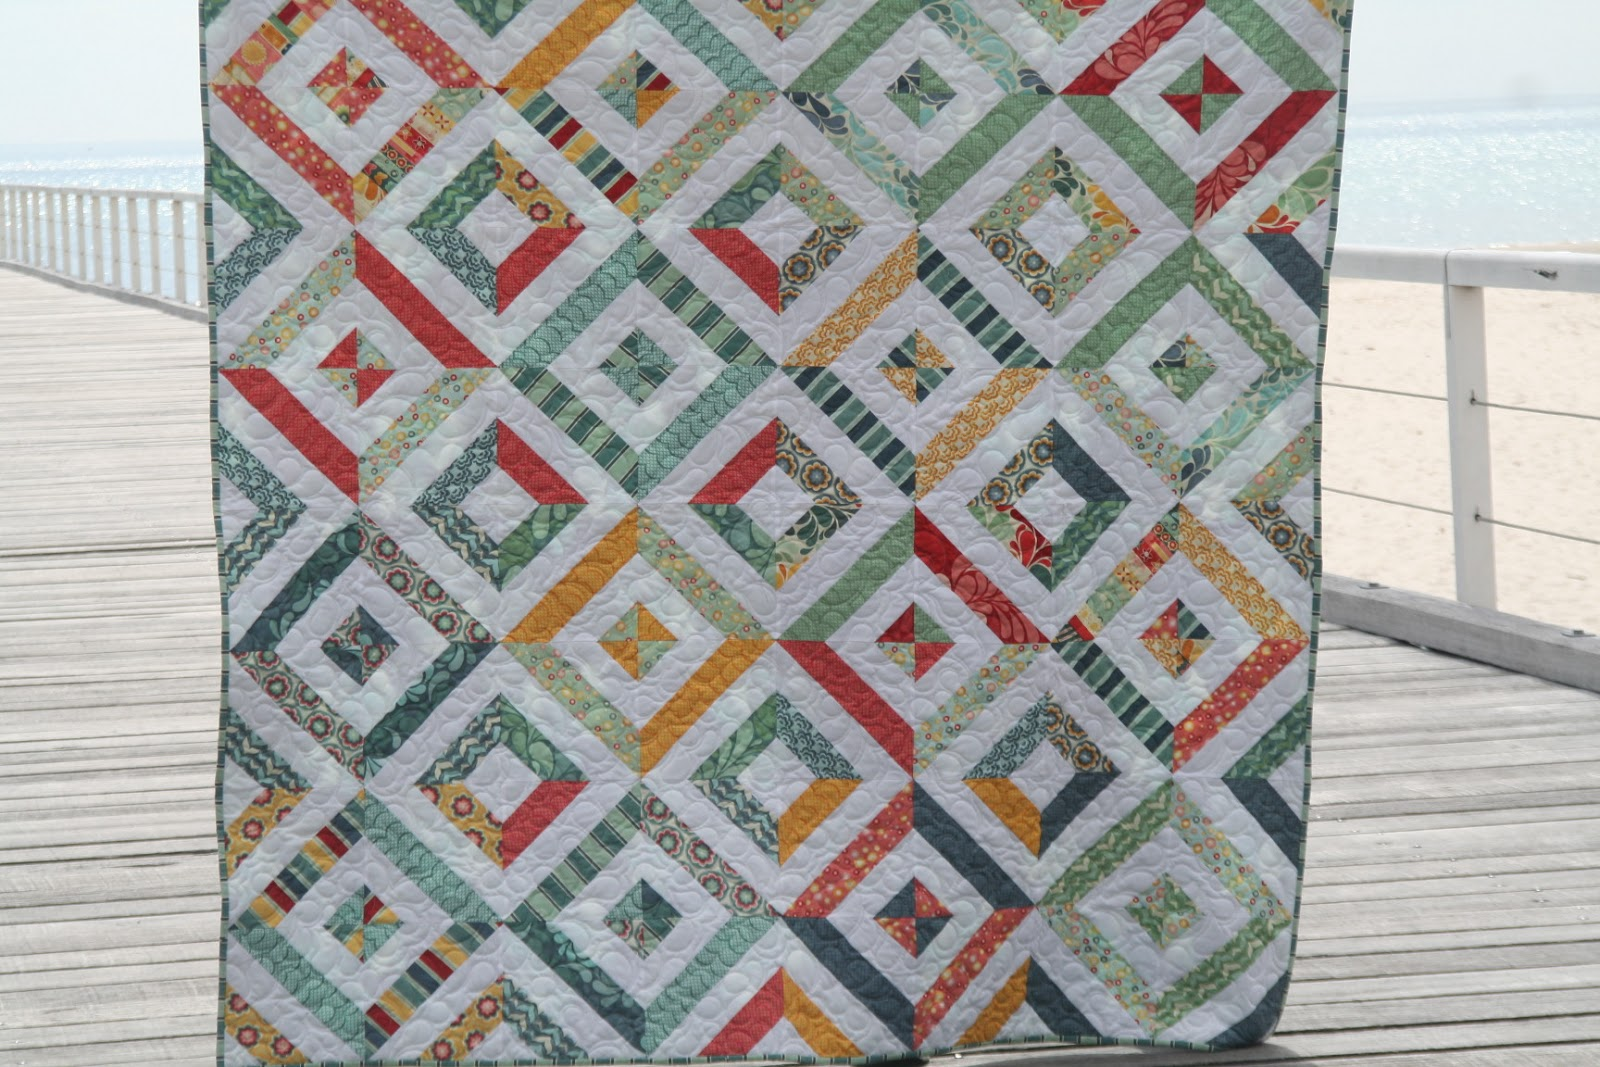 England Street Quilts: Summer in the Park - Free Jelly Roll Pattern